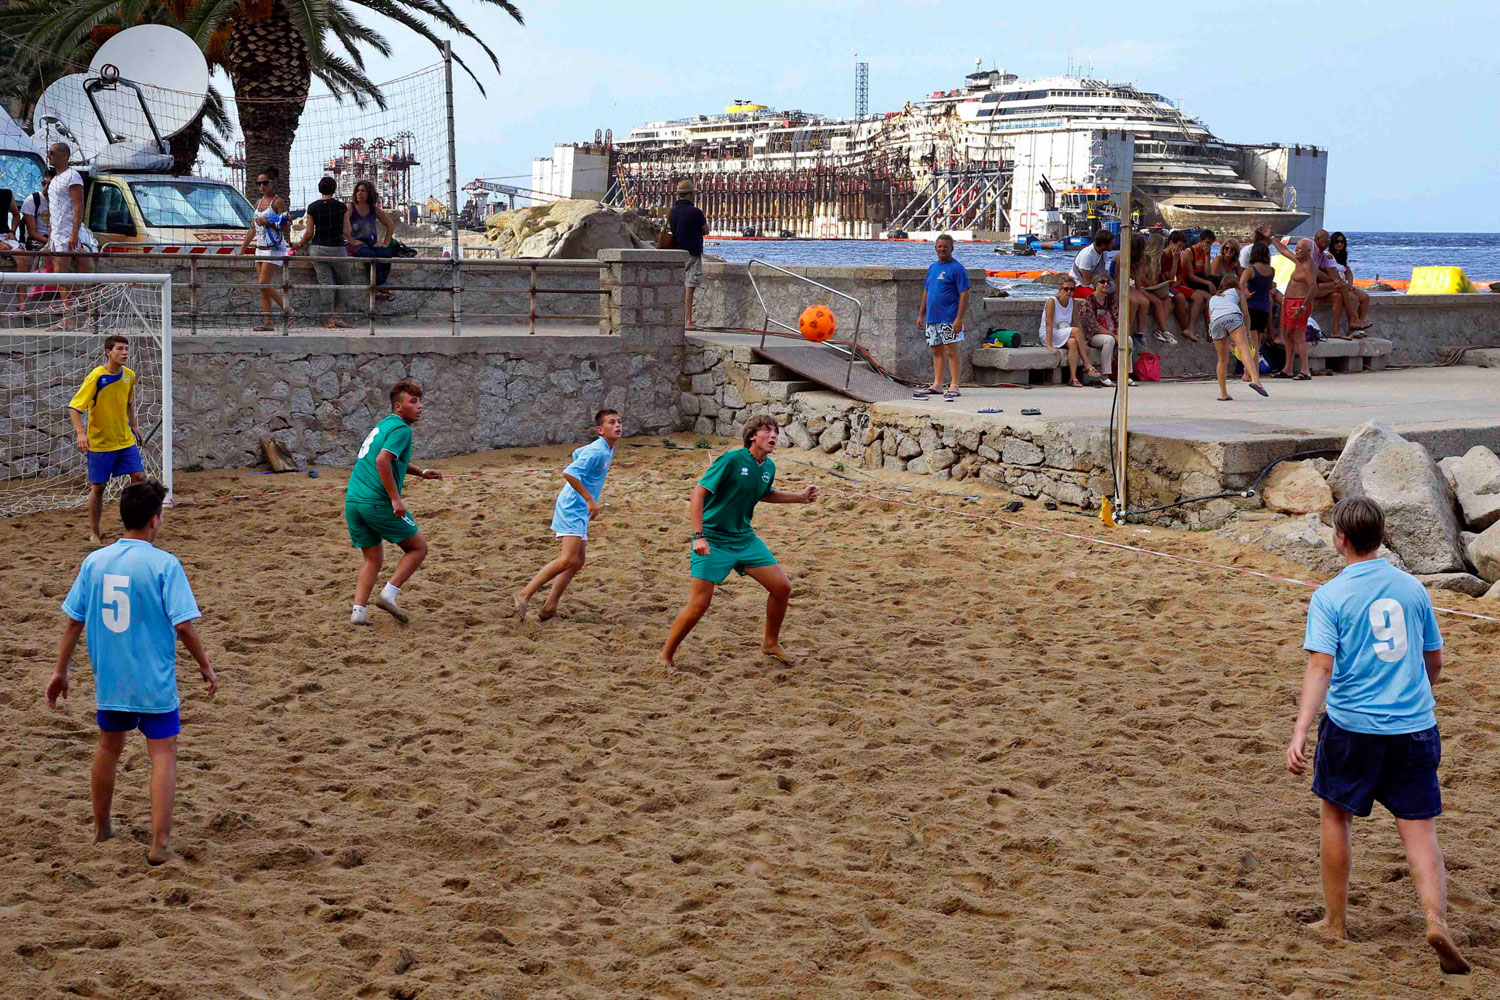 Youths play soccer at a beach as the Costa Concordia cruise liner is seen during its re-floating operation at Giglio harbor, Italy on July 22, 2014.